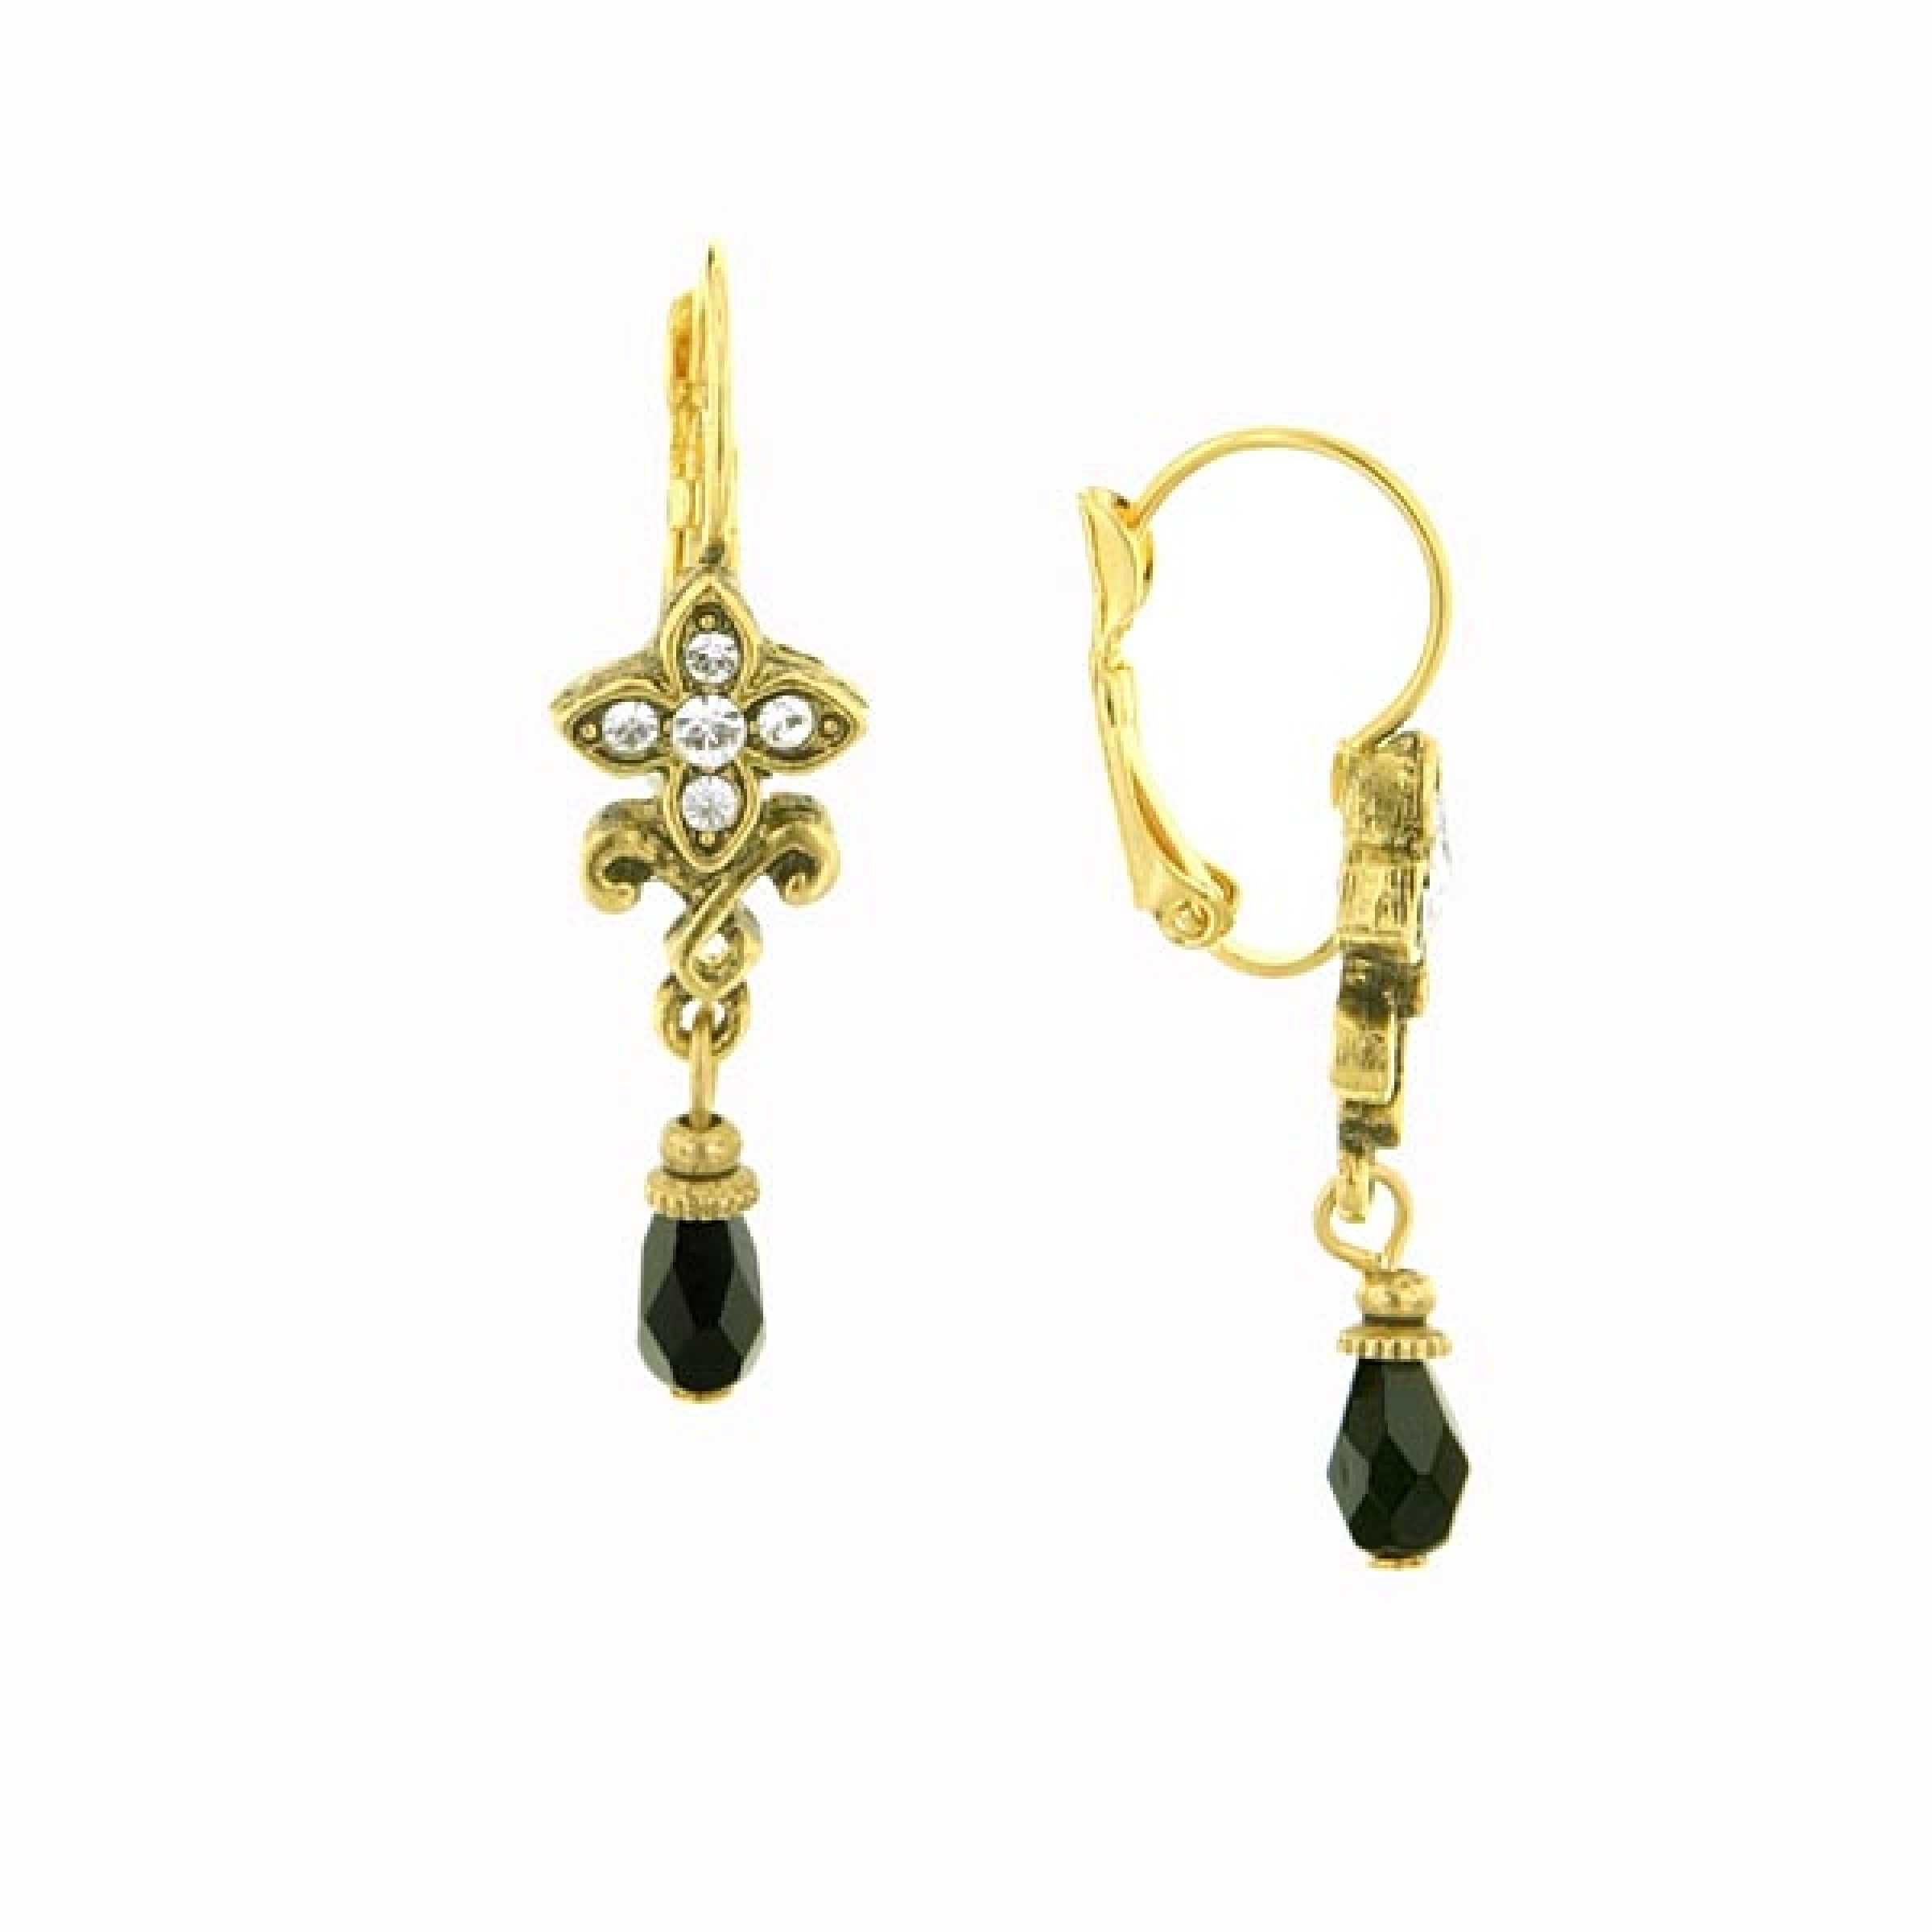 Gold/Jet/Crystal Floral Bead Drop EarringAn antique-inspired petite gold tone drop earring that features genuine Swarovski crystals and black multi-faceted beads. The earrings have lever back closures.#vintagejewelry #fashionjewelry #costumejewelry #bridaljewelry #antiquejewelry